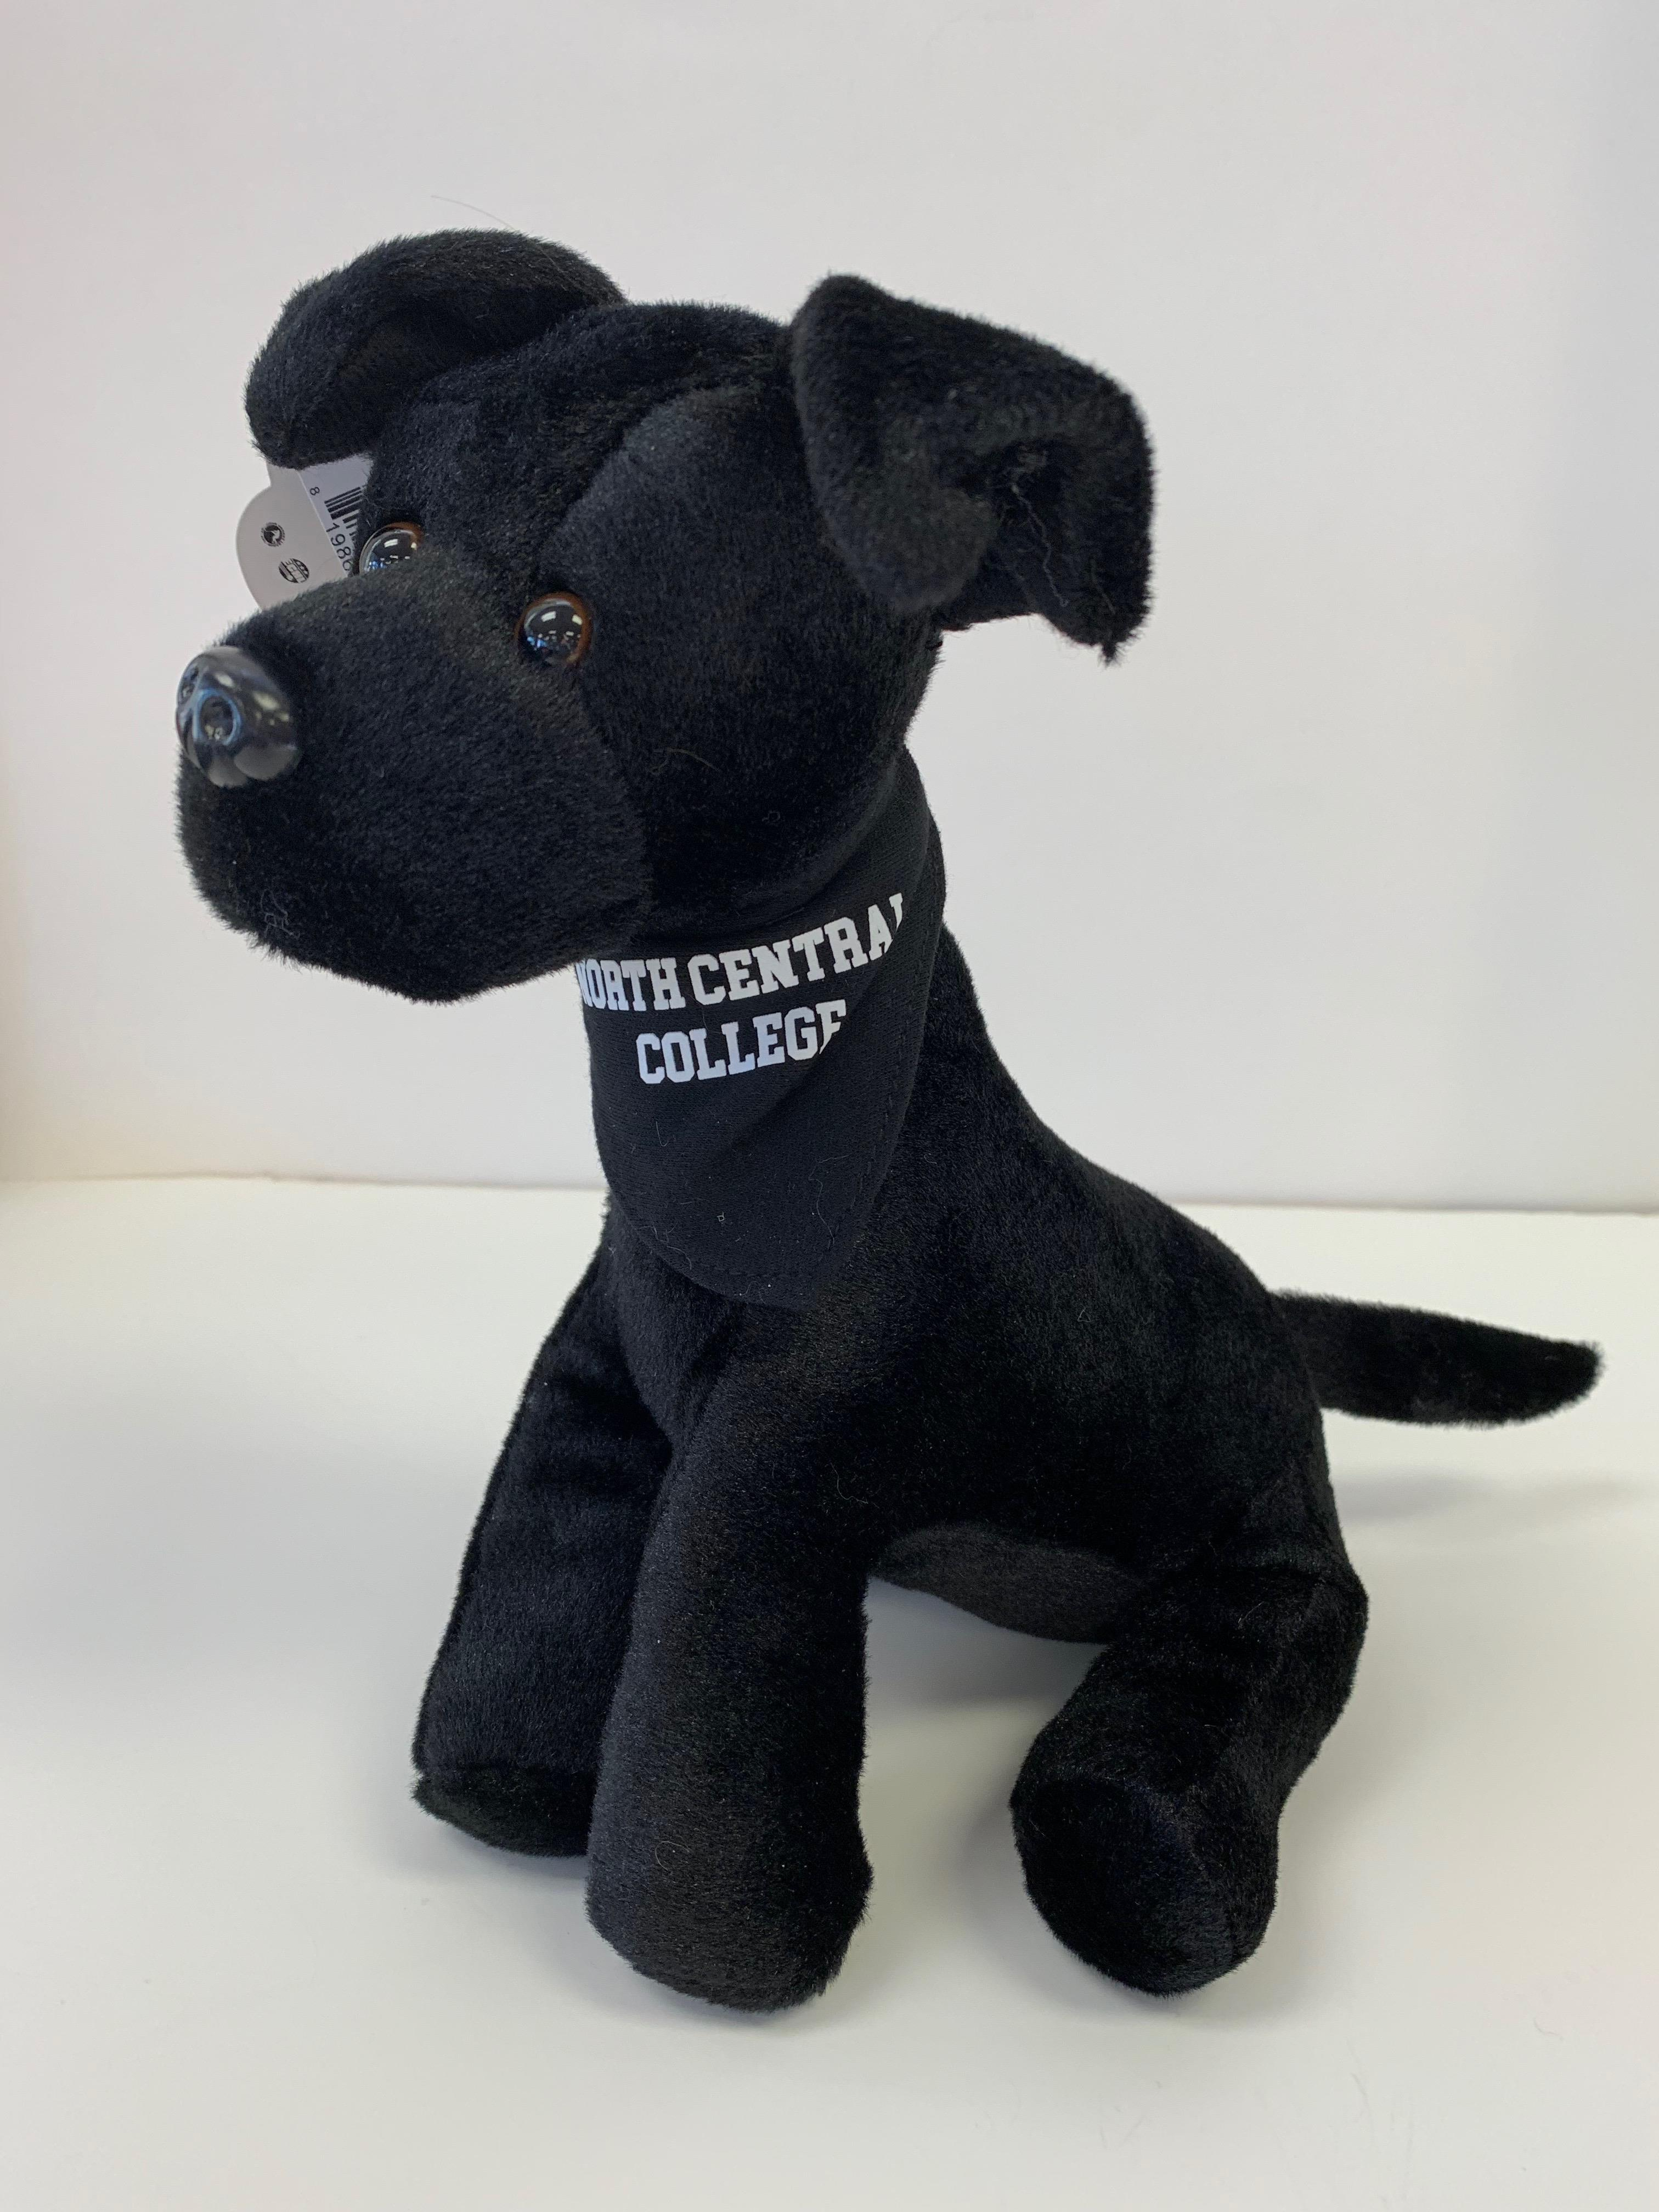 Image for the Mighty Tykes Plush Black Lab product